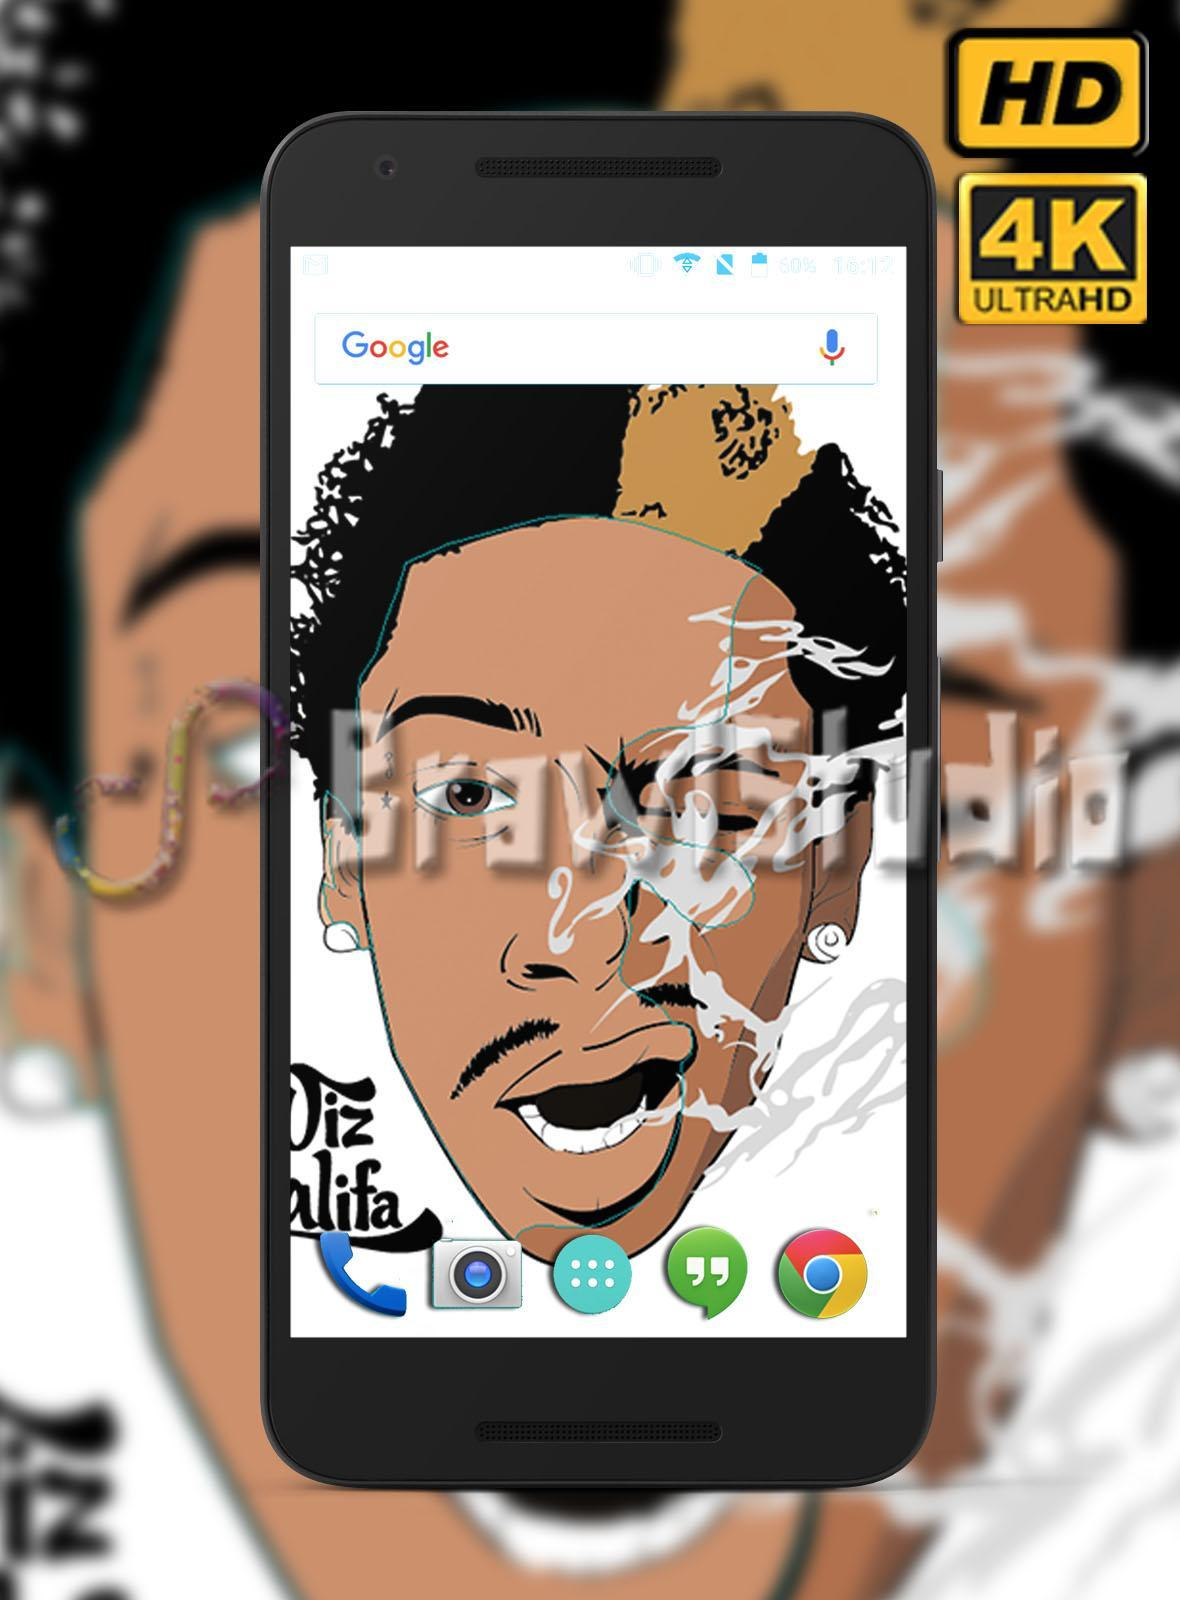 Wiz Khalifa HD Wallpaper for Android - APK Download